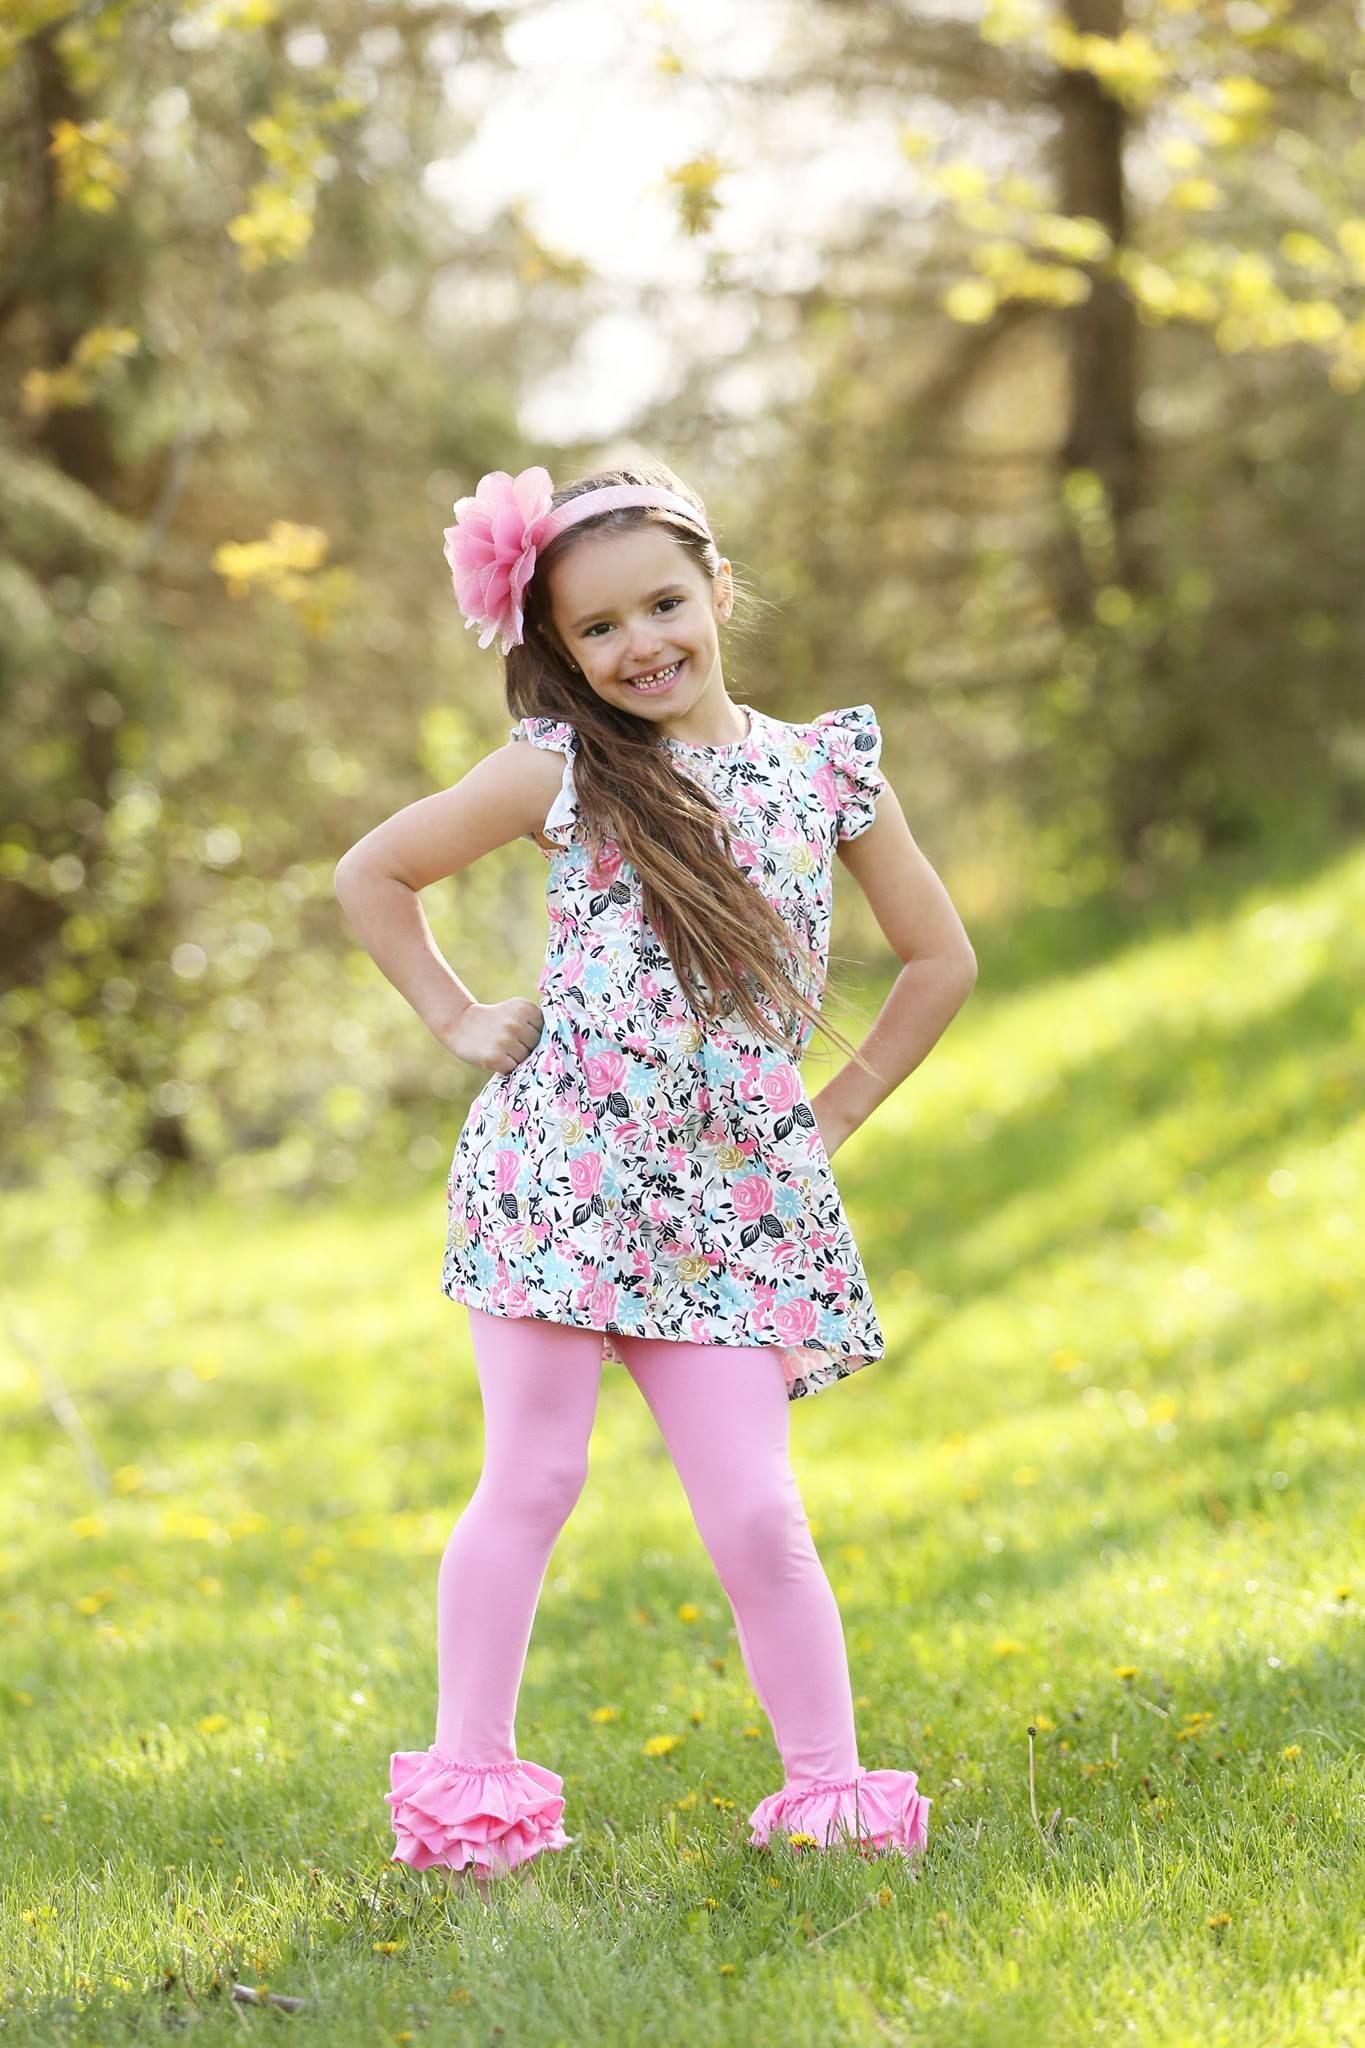 5faf891388f4a You saved to Children's Top and Shirts 1 Children's boutique clothing and accessories  Knit ruffle items, icings, cotton clothing, toddlers fashion, ...